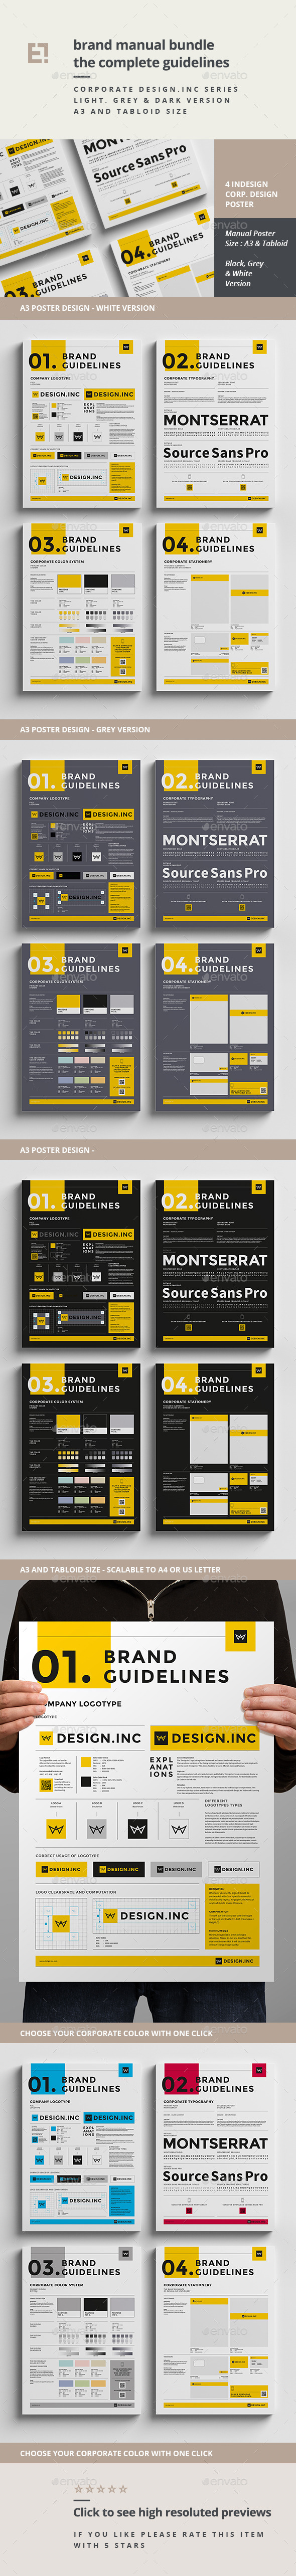 GraphicRiver Brand Manual Bundle 11285514